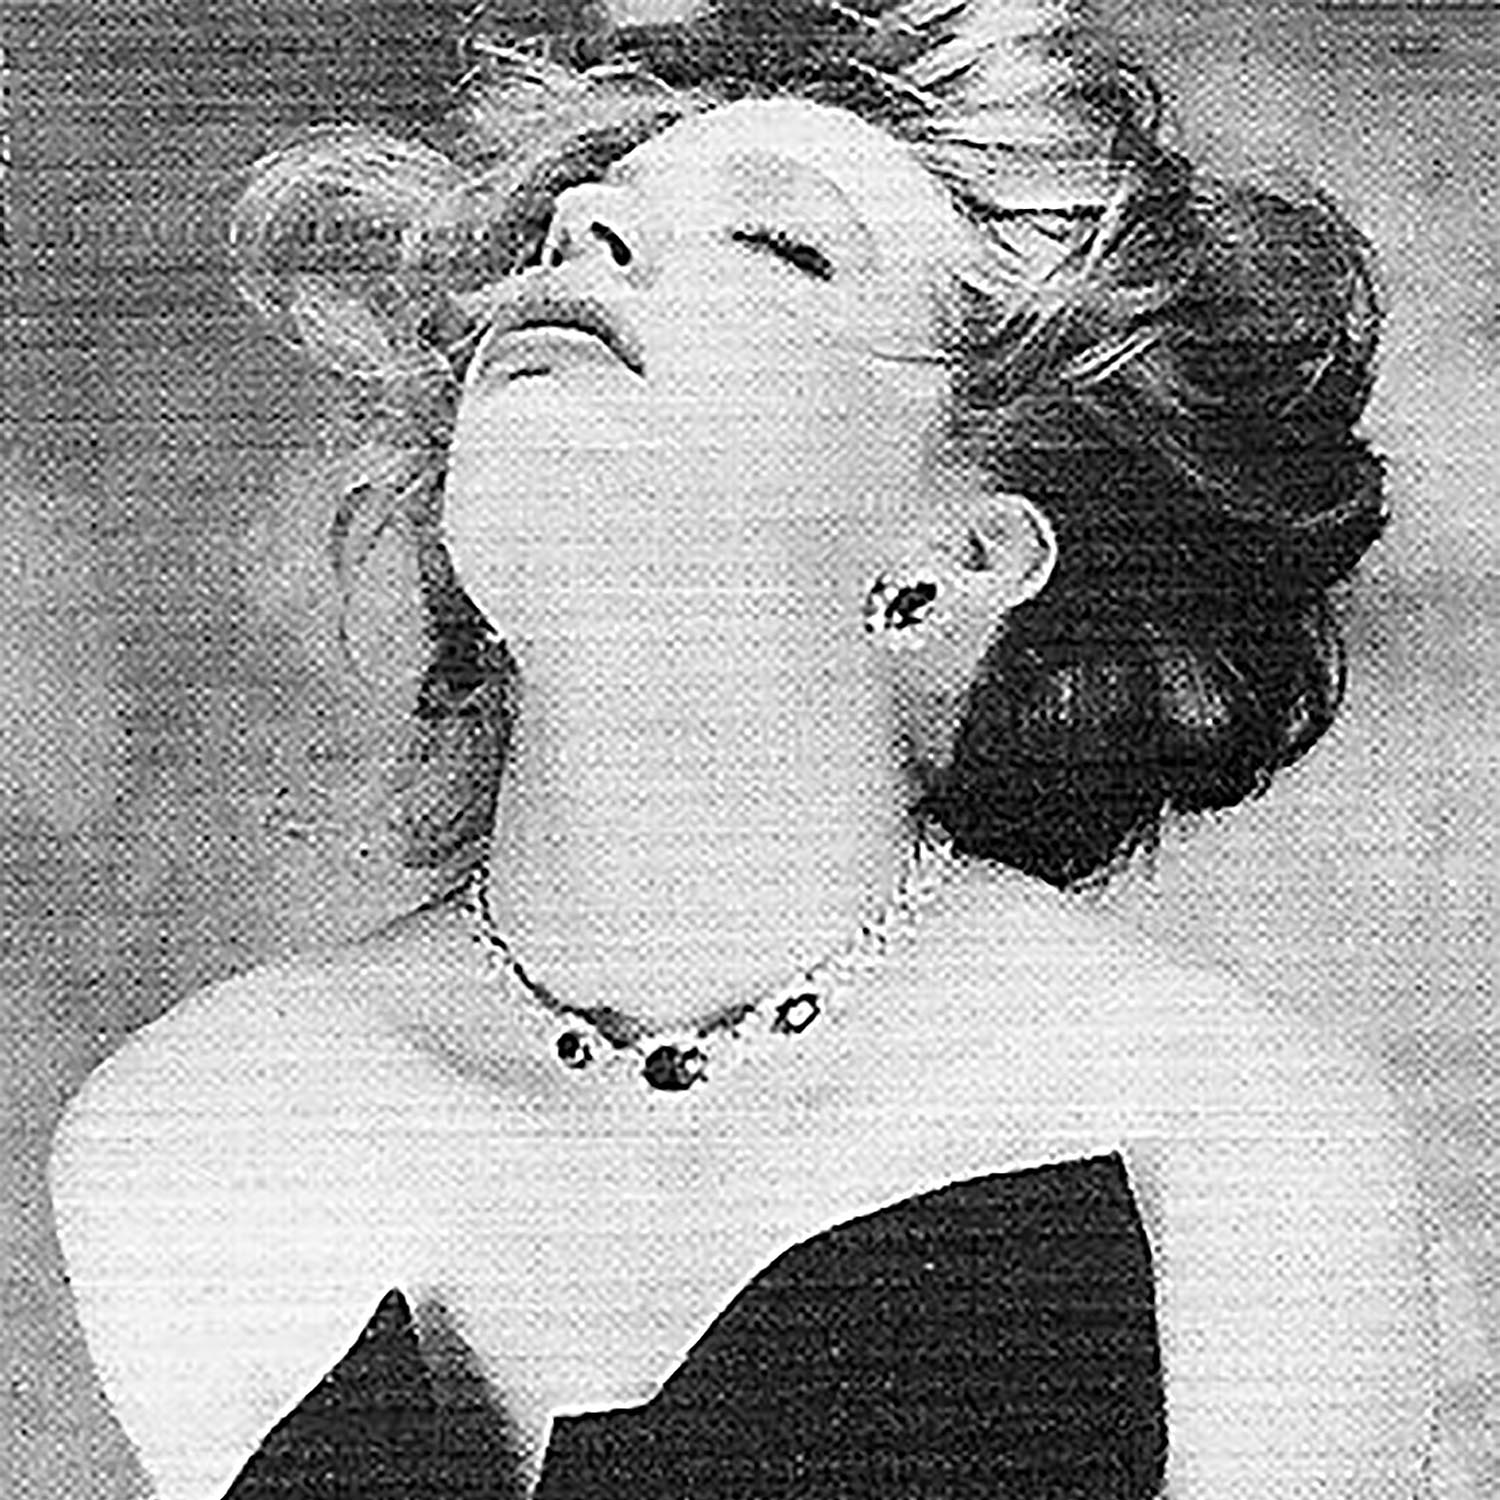 In western culture, jewels are traditionally the gift of a man to the woman, perhaps as a symbol of physical possession. Numerous jewelrey ads show women in a state of ecstasy, swooning or appearing disheveled.